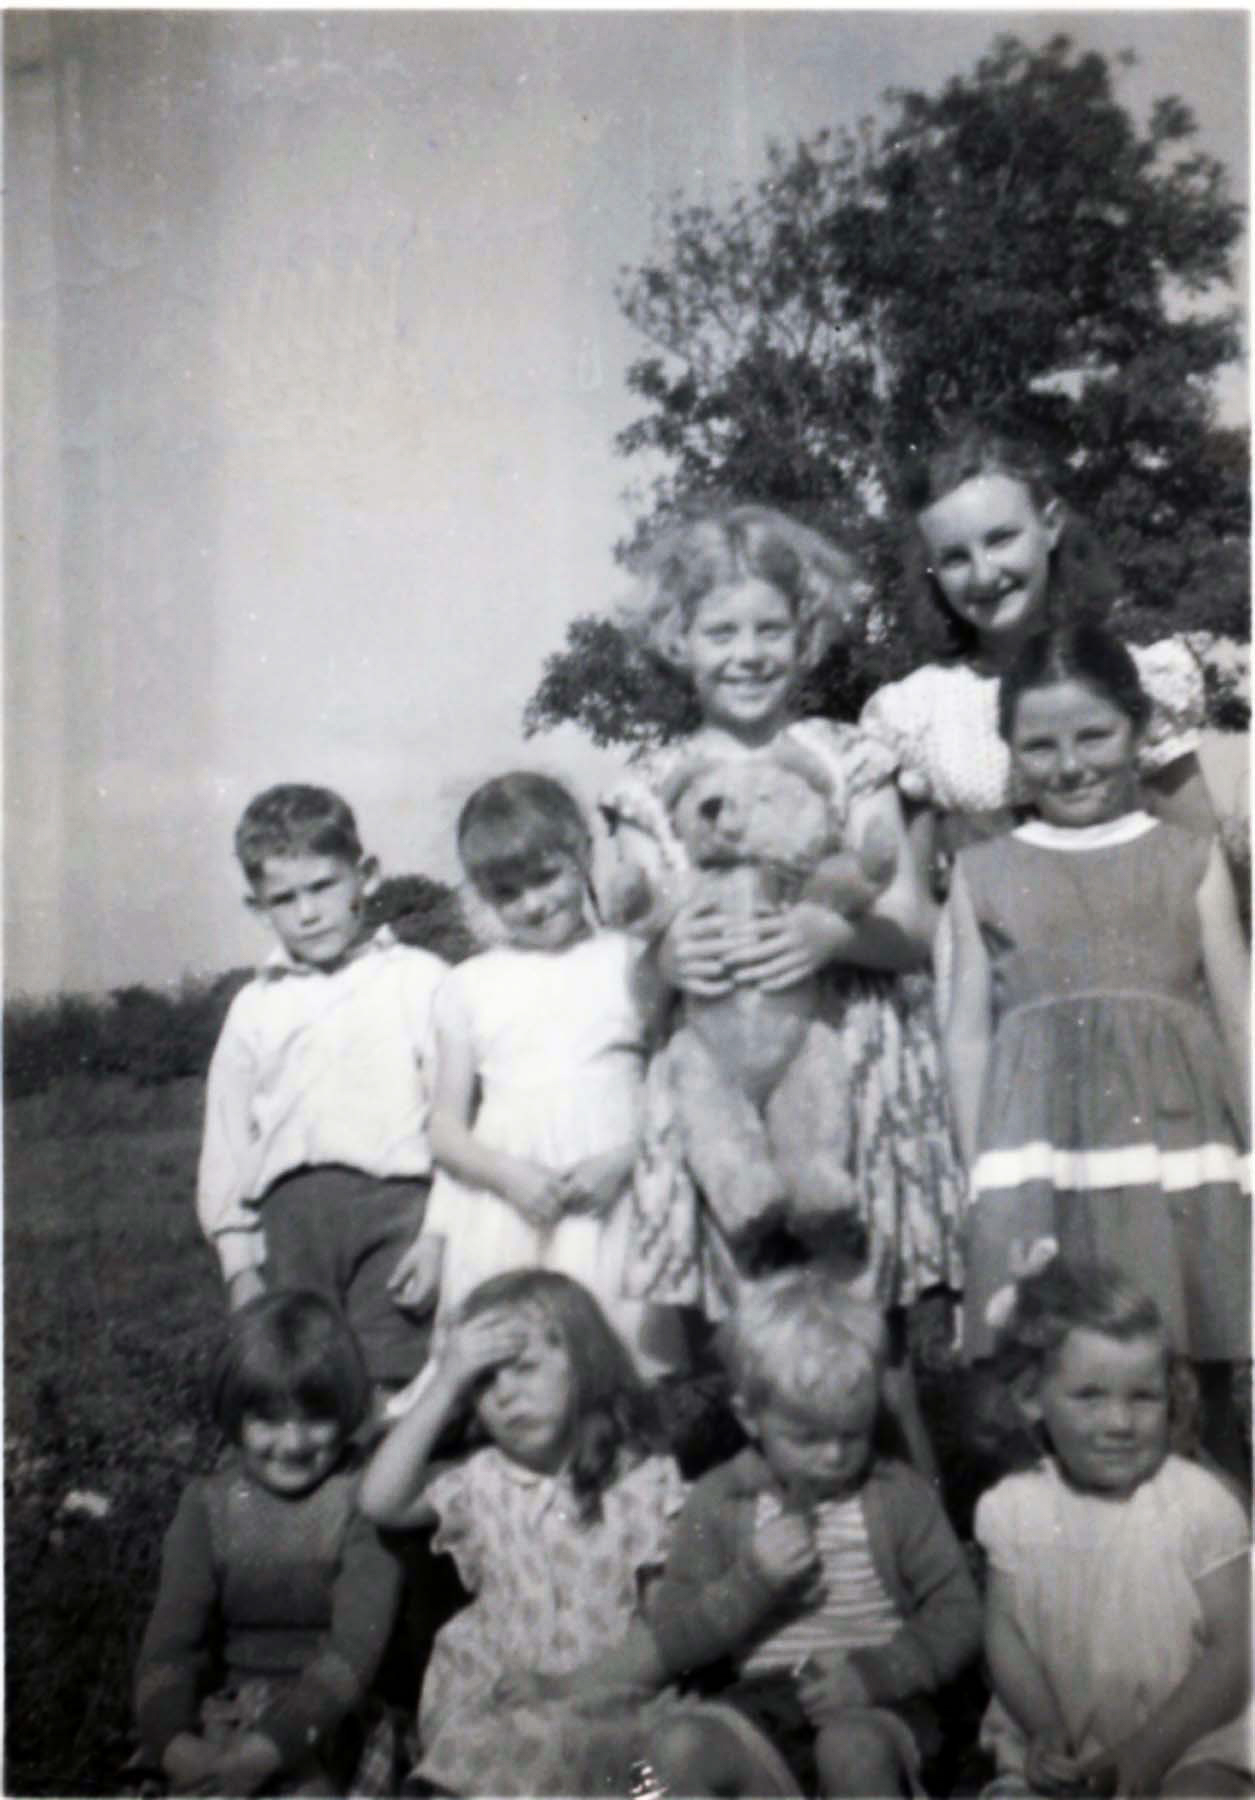 Photo of children from And Colgan, Carndonagh, 1950s.